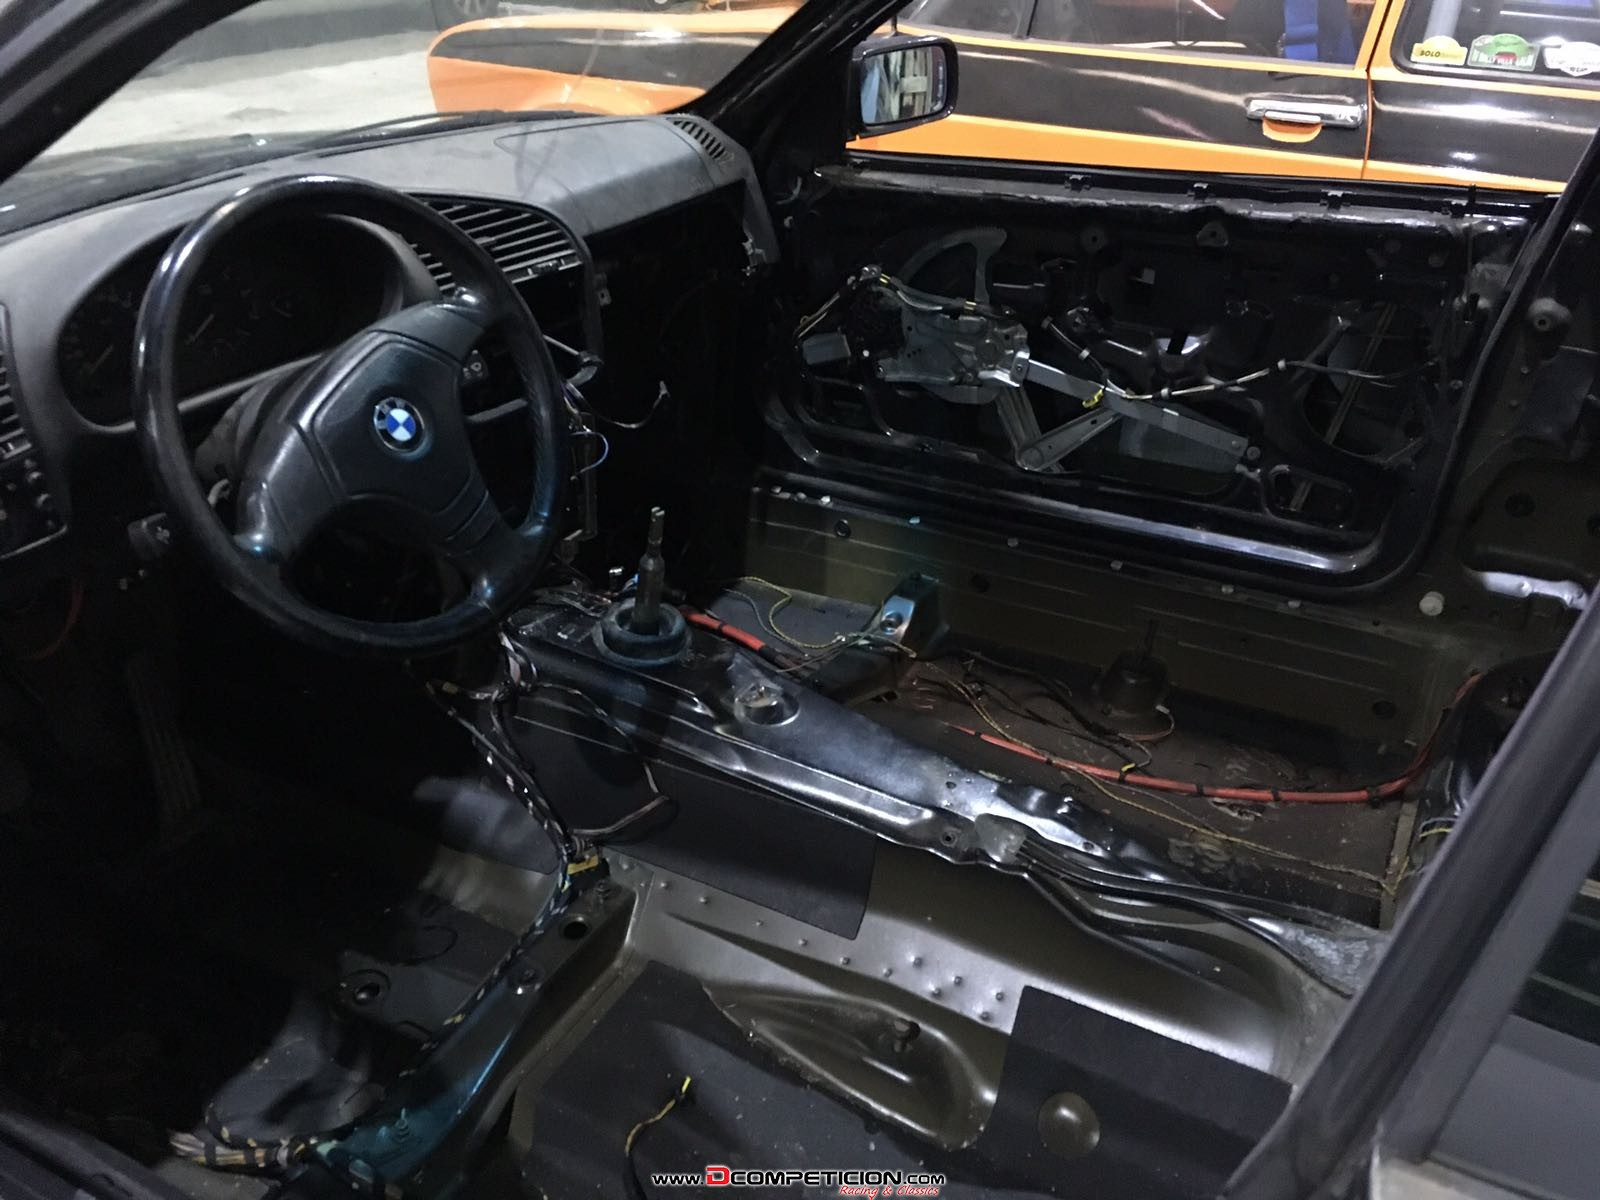 Foto3 Proyecto bmw e36 coupe